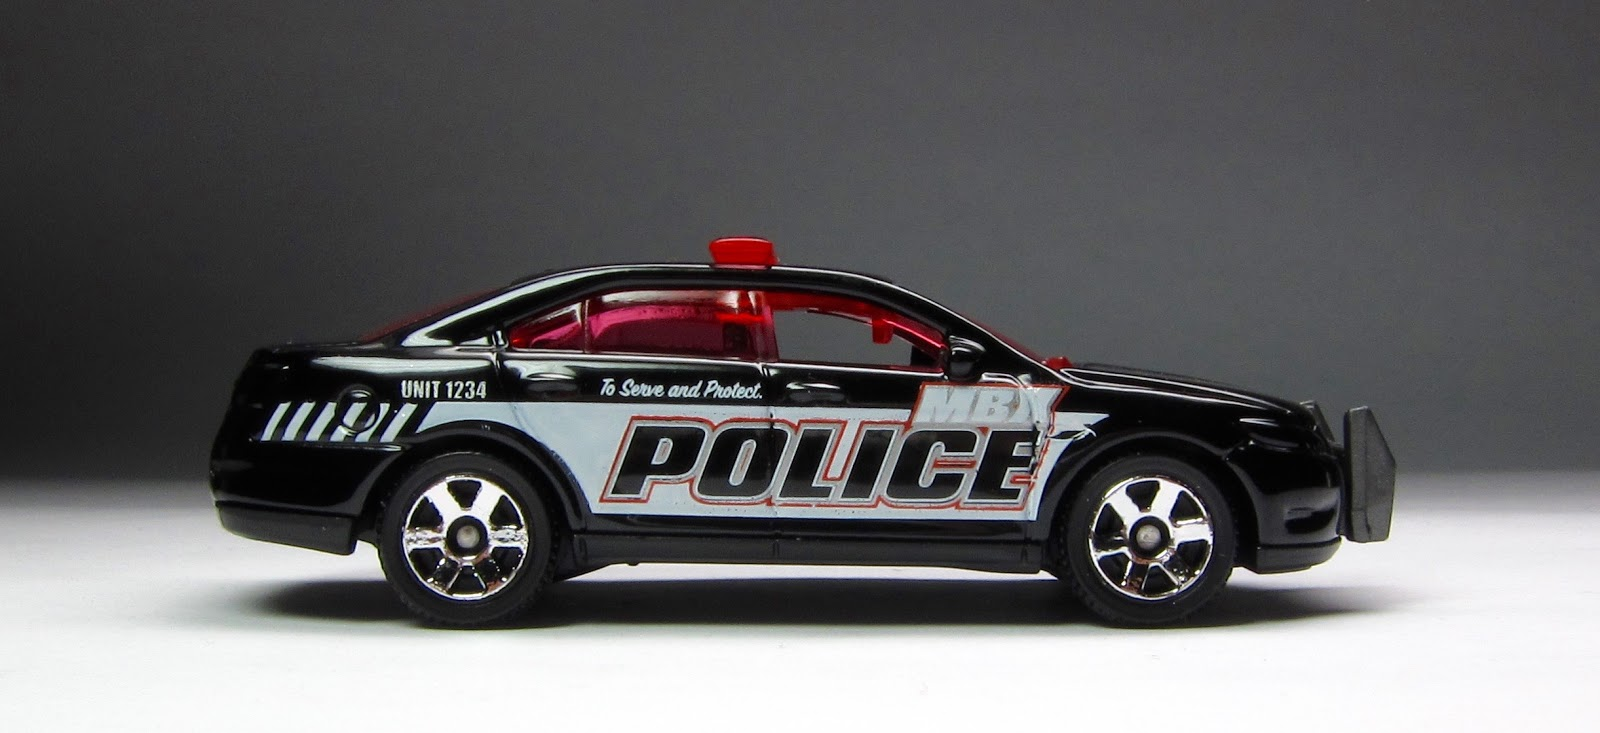 The Last Golden Age of Matchbox: Black & White Police Cars ...